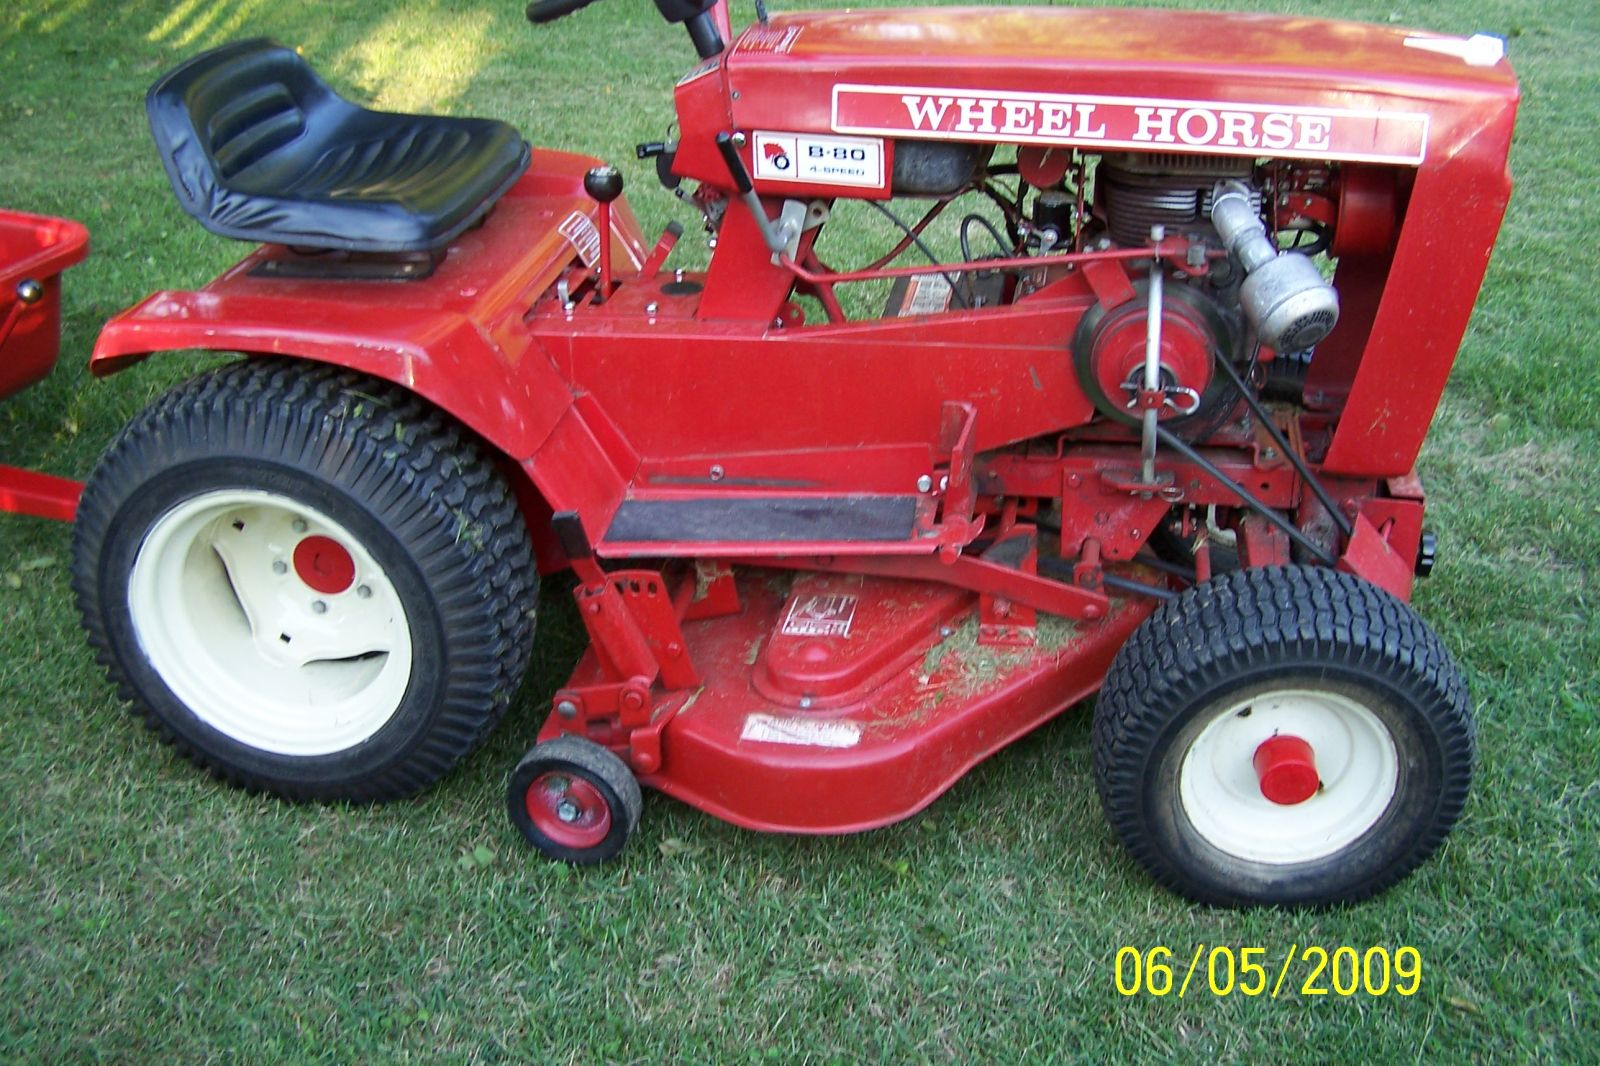 1975 Wheel Horse B-80 Tractor, Model No:  1-0141 with Wheel Horse Dump Cart Attached